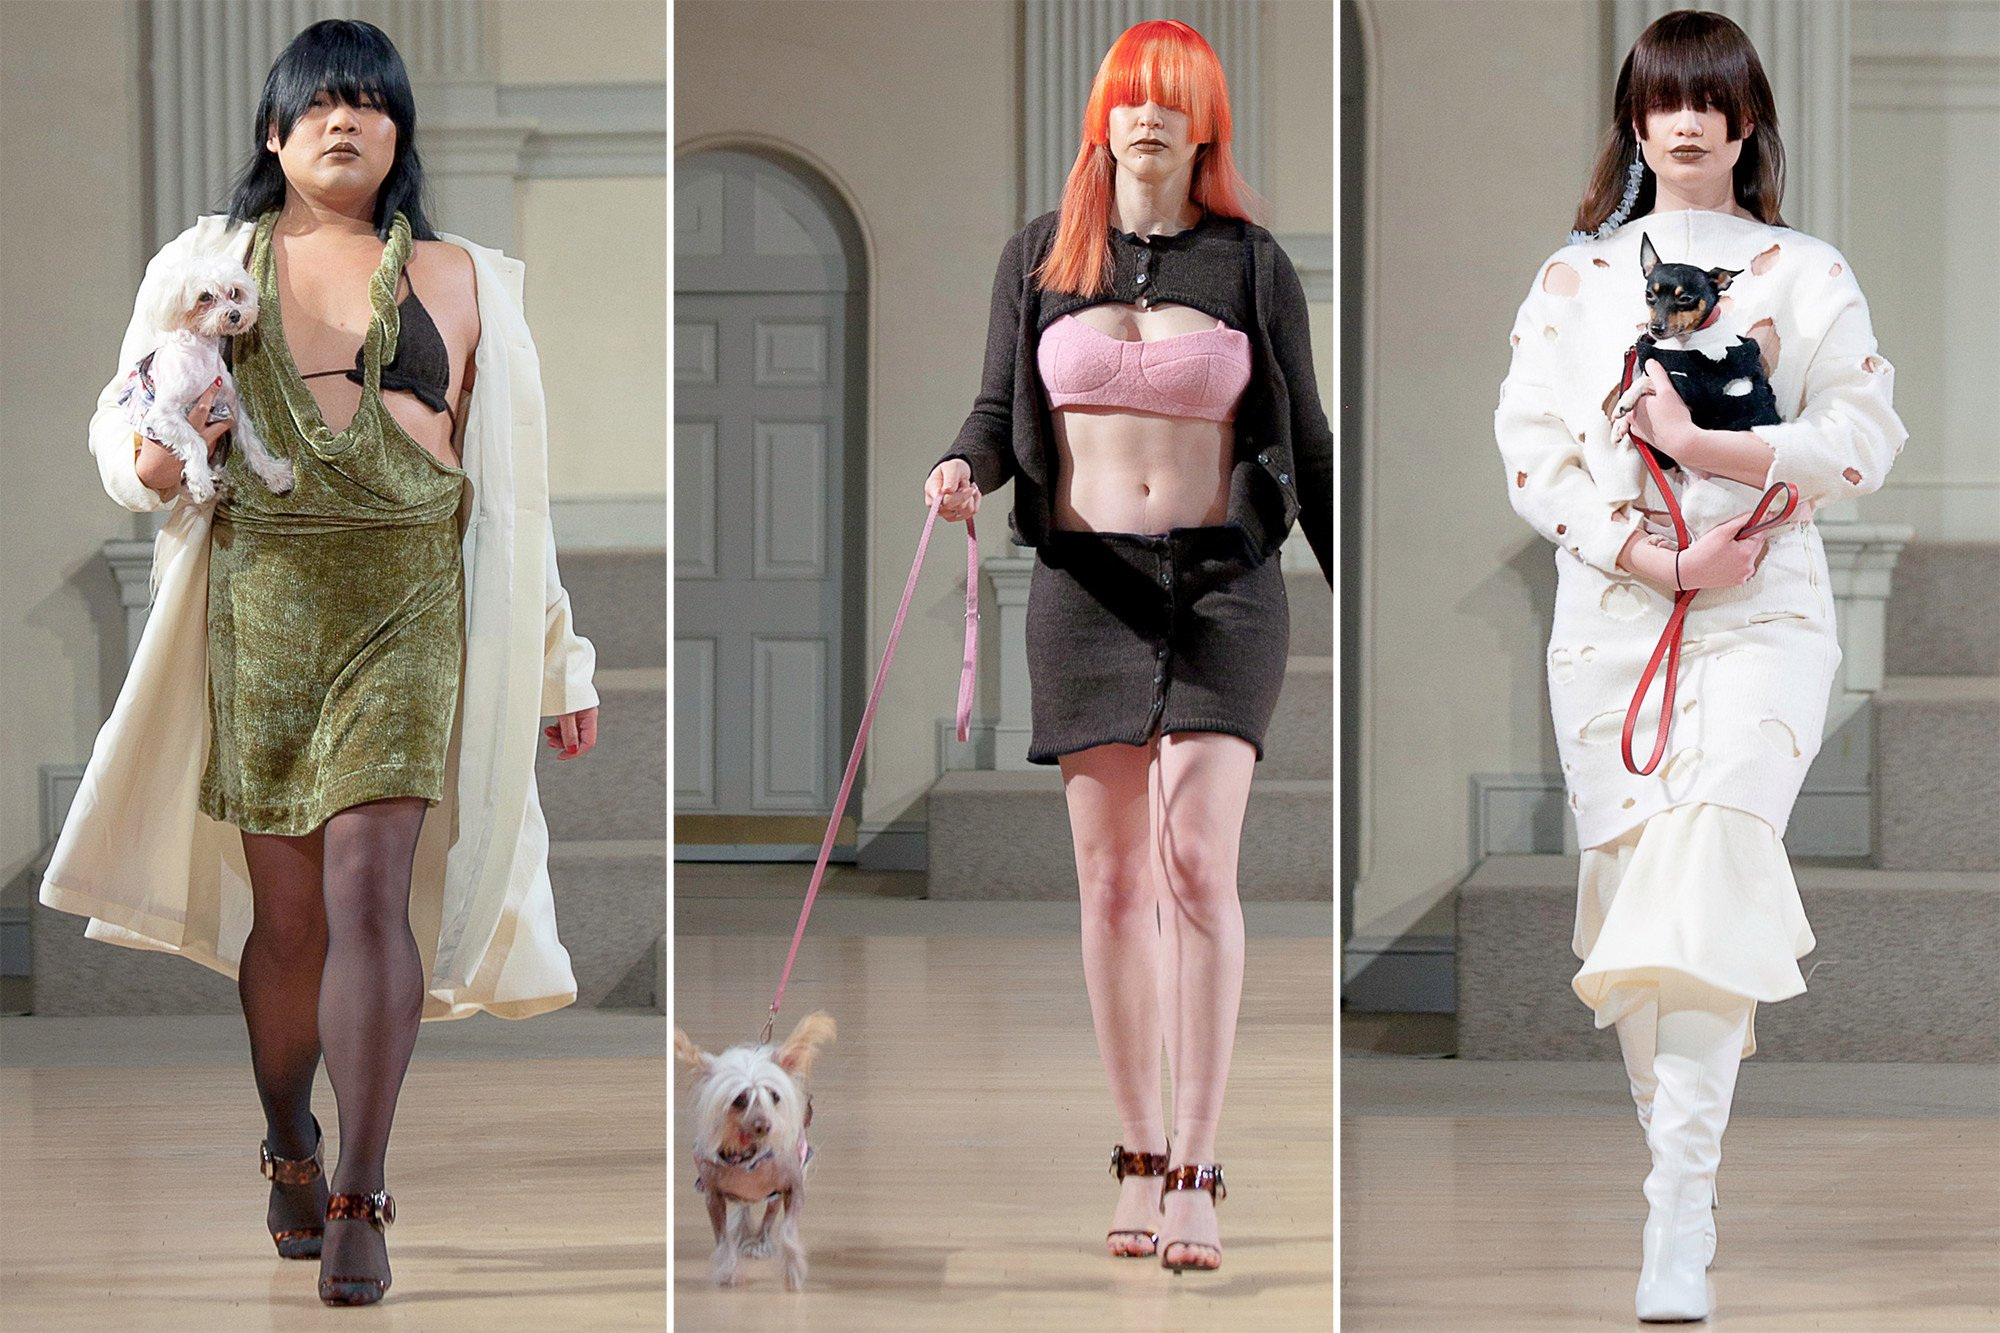 Puppy models take over the Fashion Week catwalk